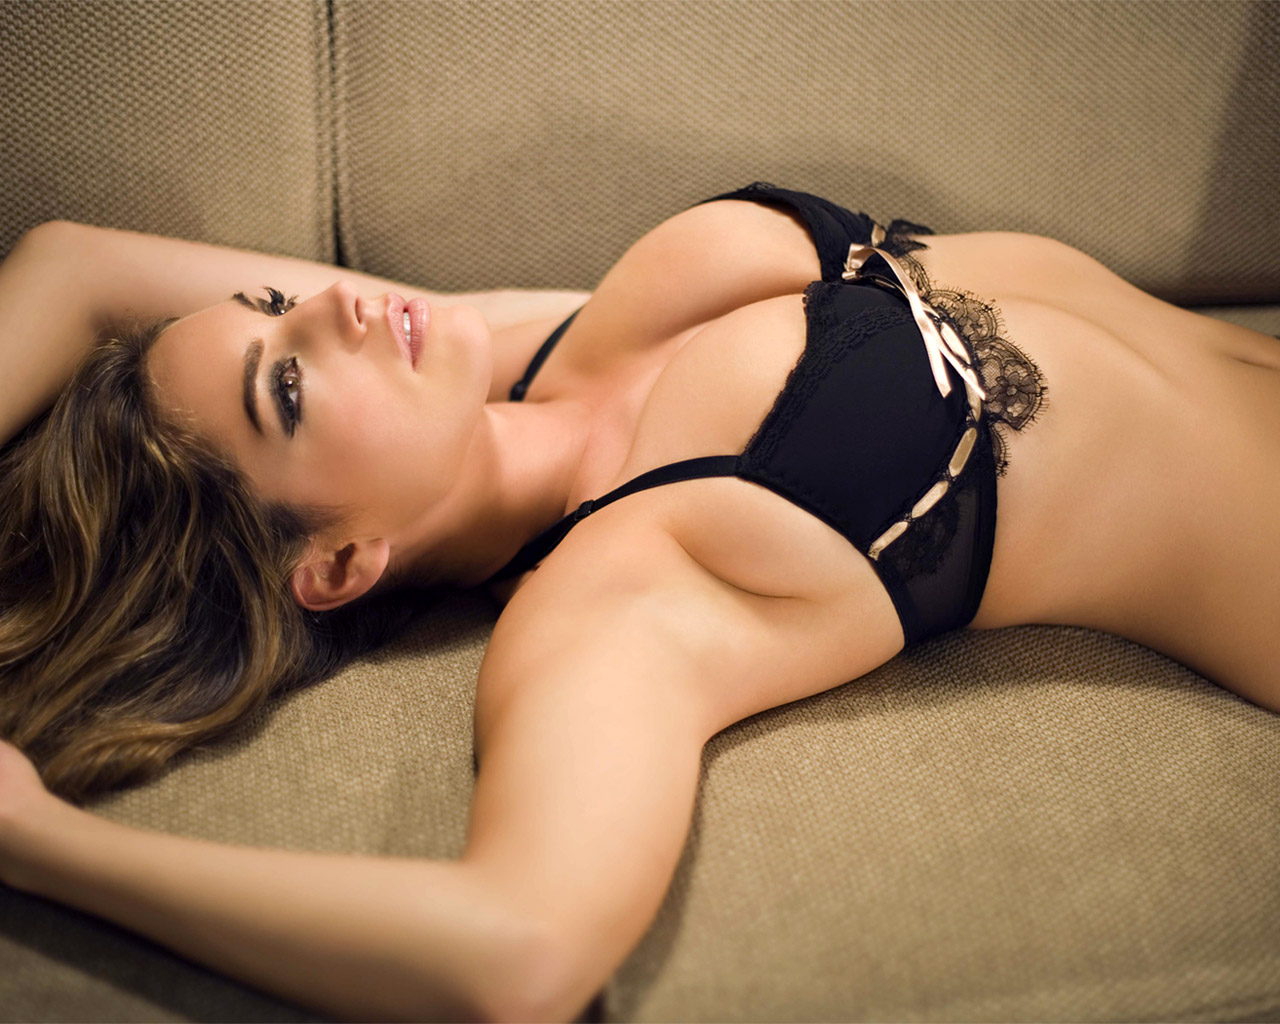 The Shocking Inner Life of Lingerie Models